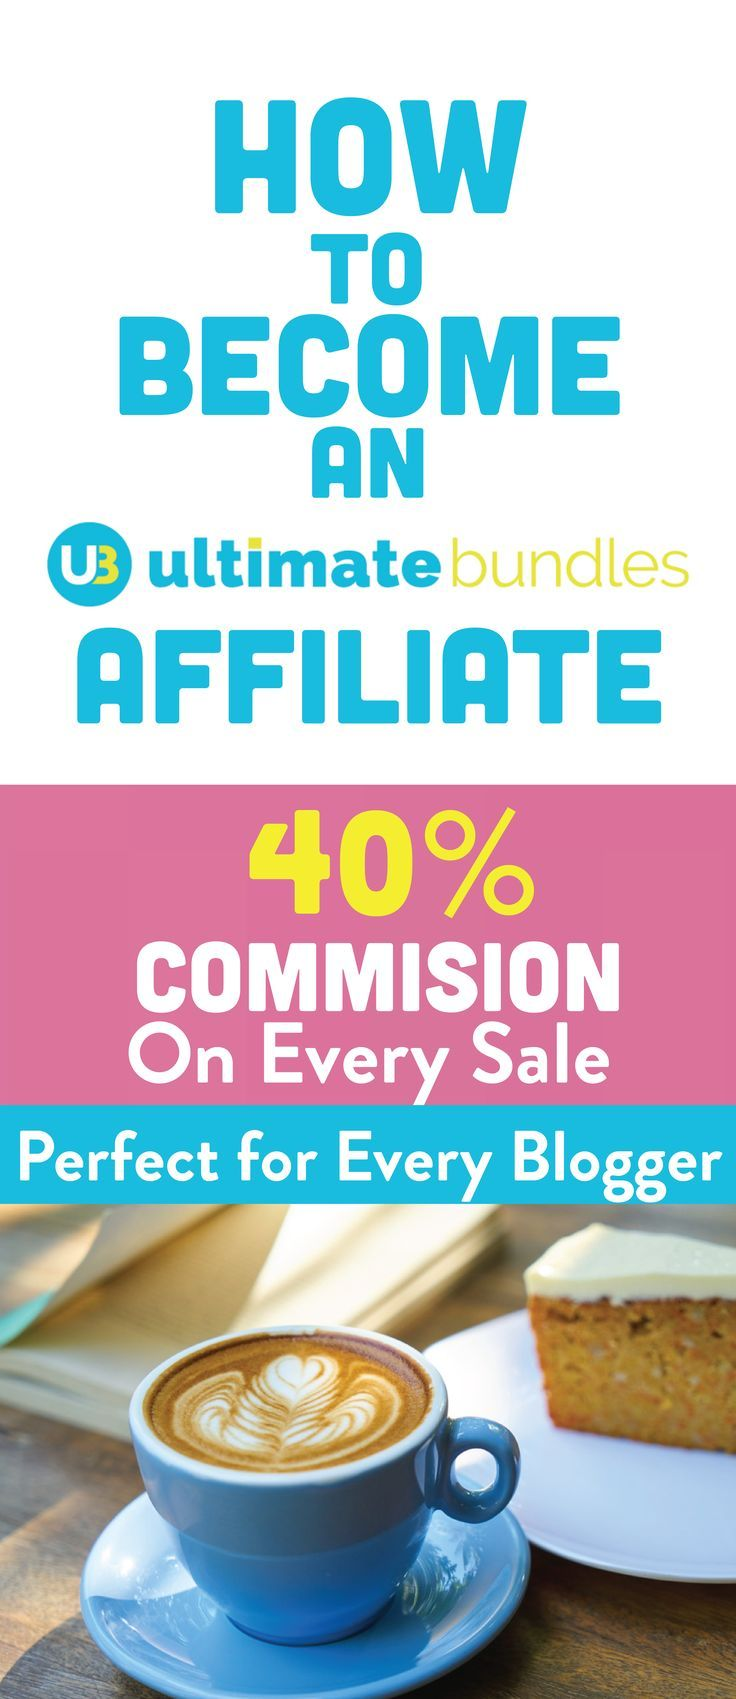 Ultimate bundles affiliate program the profitable win win program ultimate bundles affiliate program the profitable win win program for every blogger you need to know about forumfinder Gallery